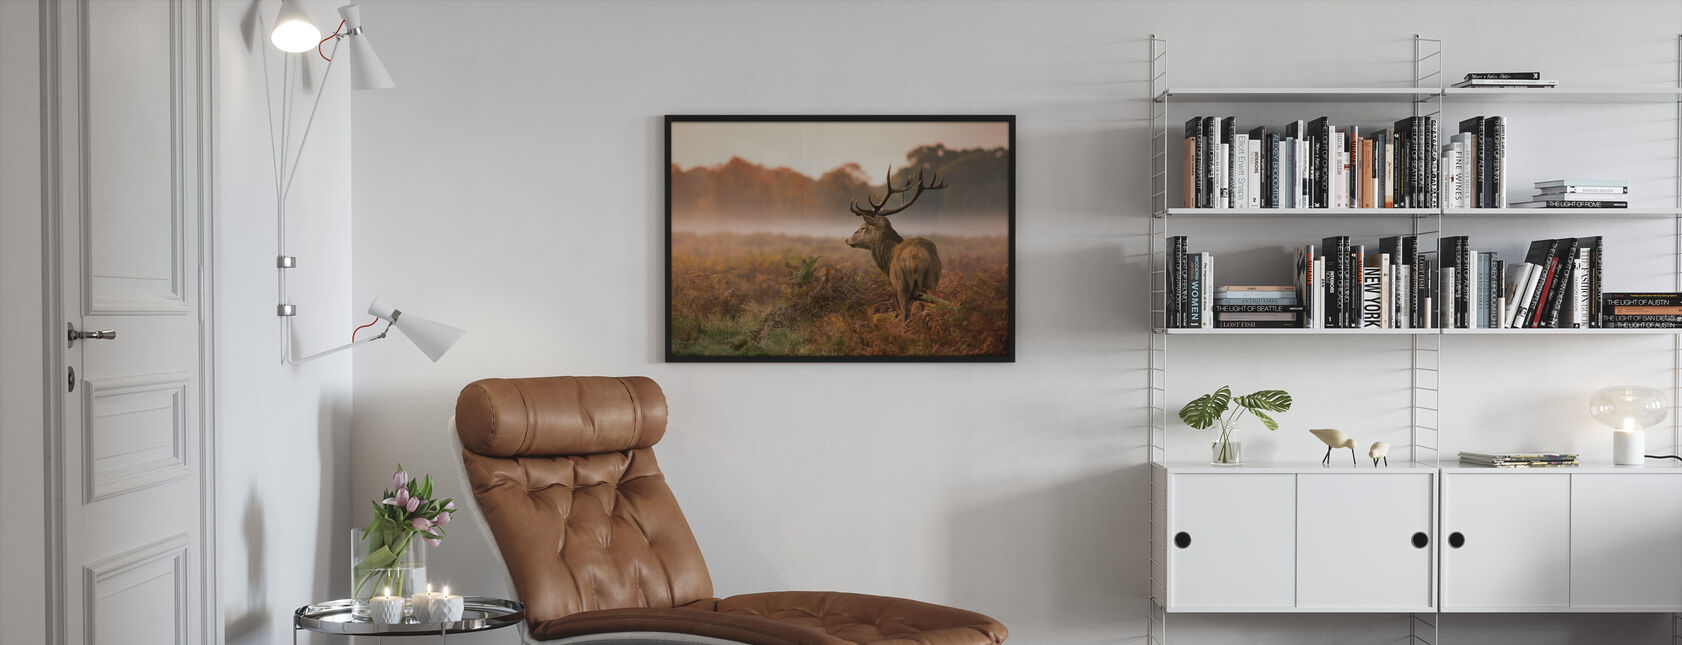 Red Deer Stag - Framed print - Living Room